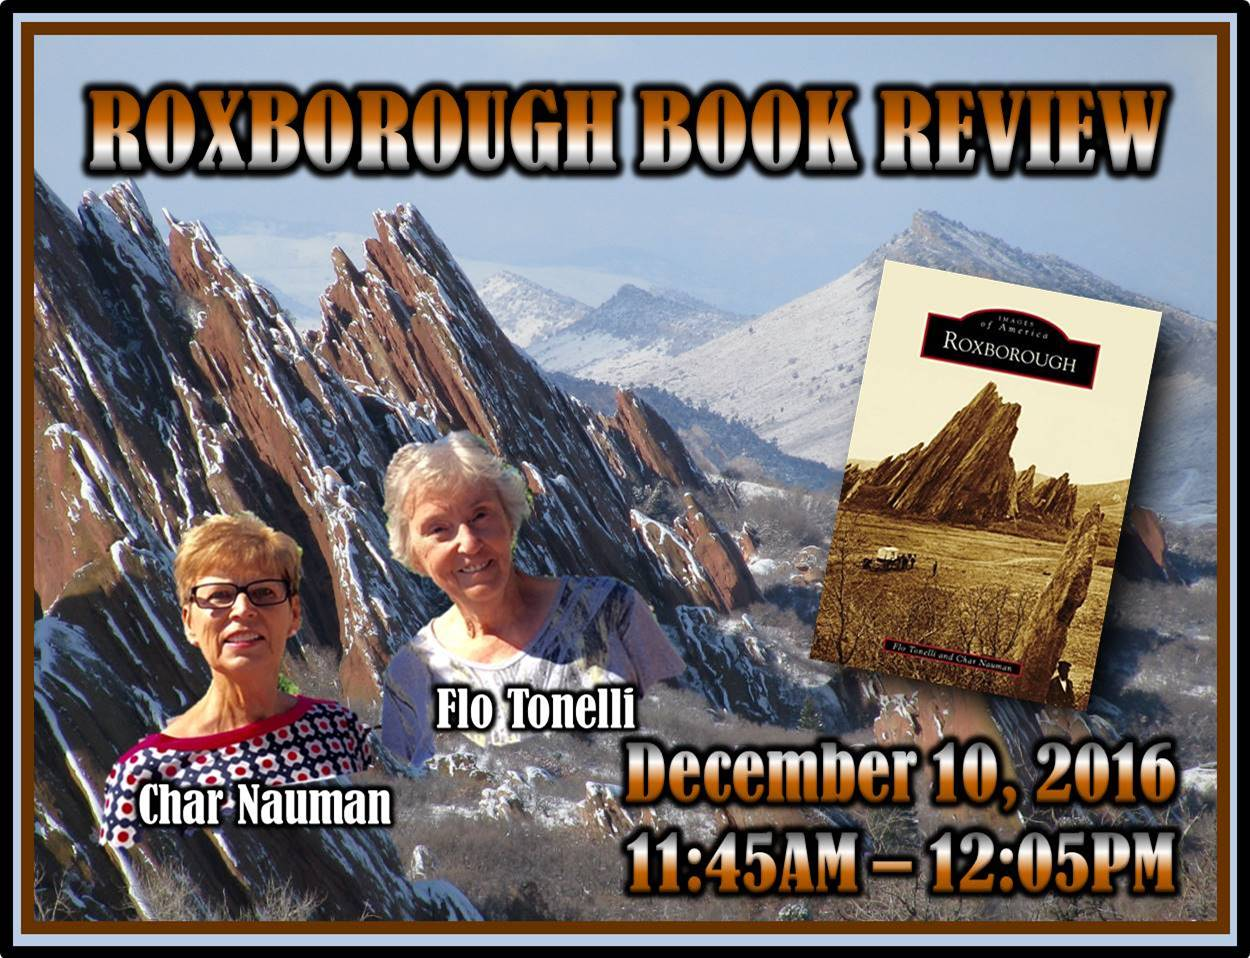 roxborough-book-review